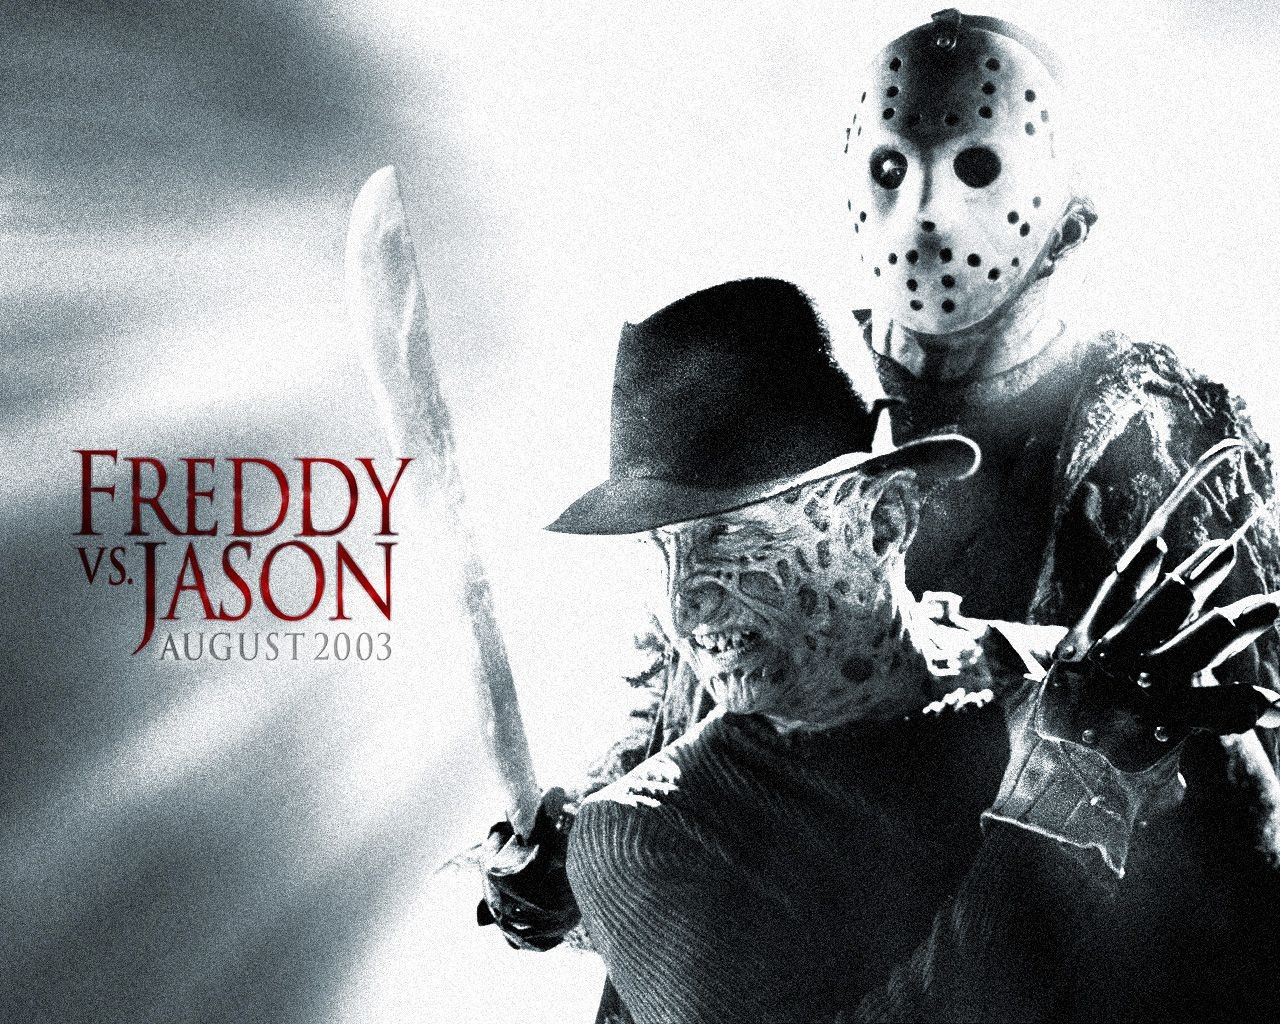 Freddy Vs Jason Images Death Match HD Wallpaper And Background Photos